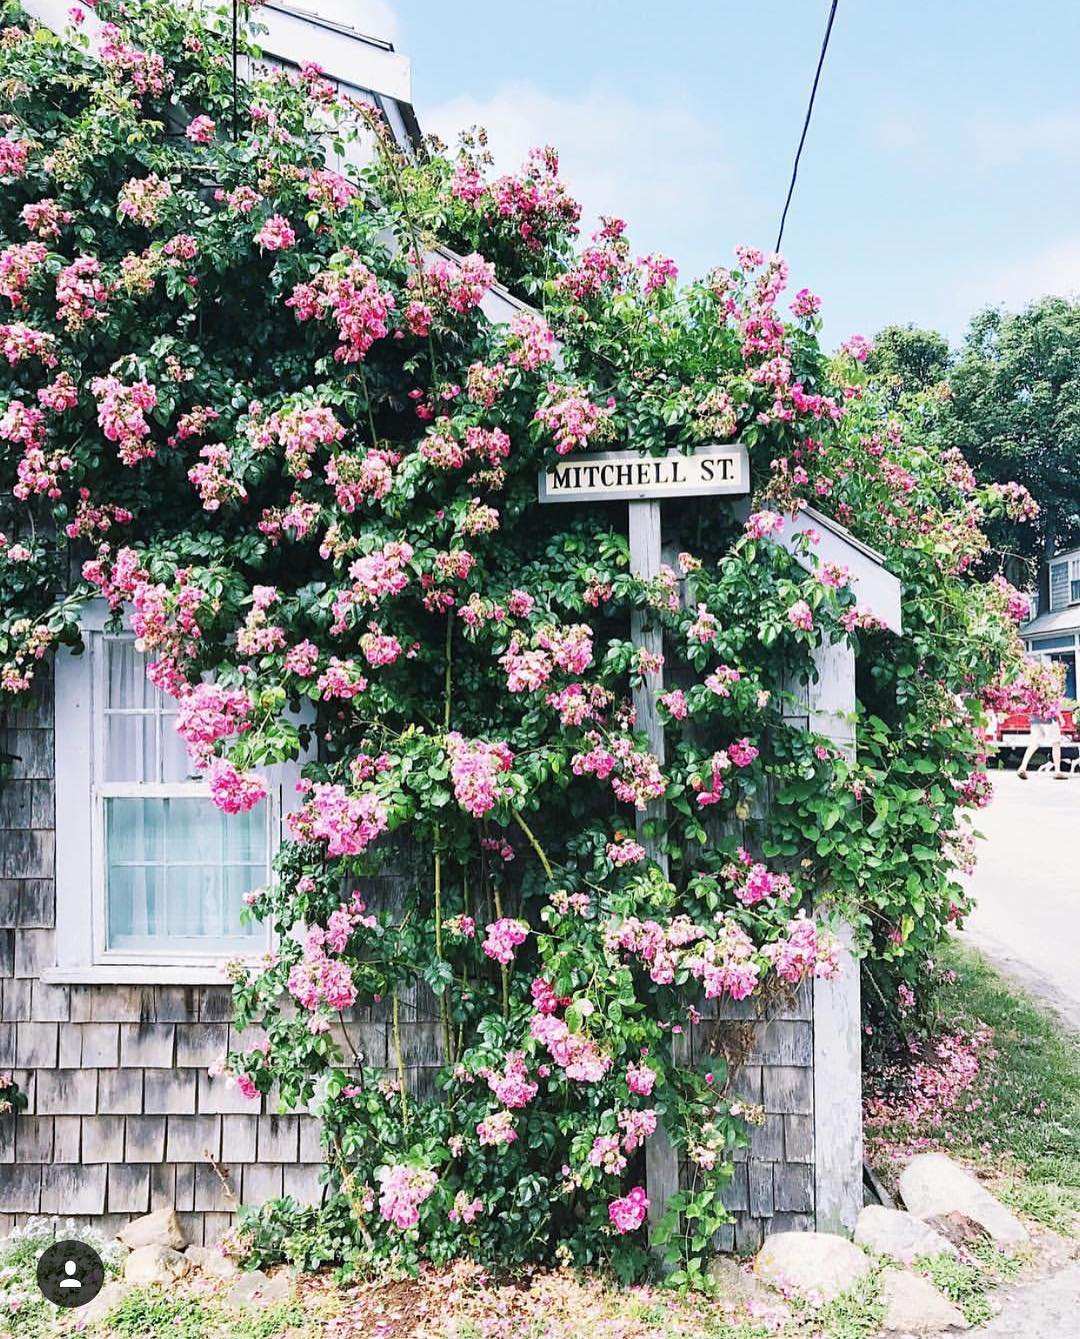 Dreaming of Nantucket Cant wait to return Labor Day weekend!!hellip